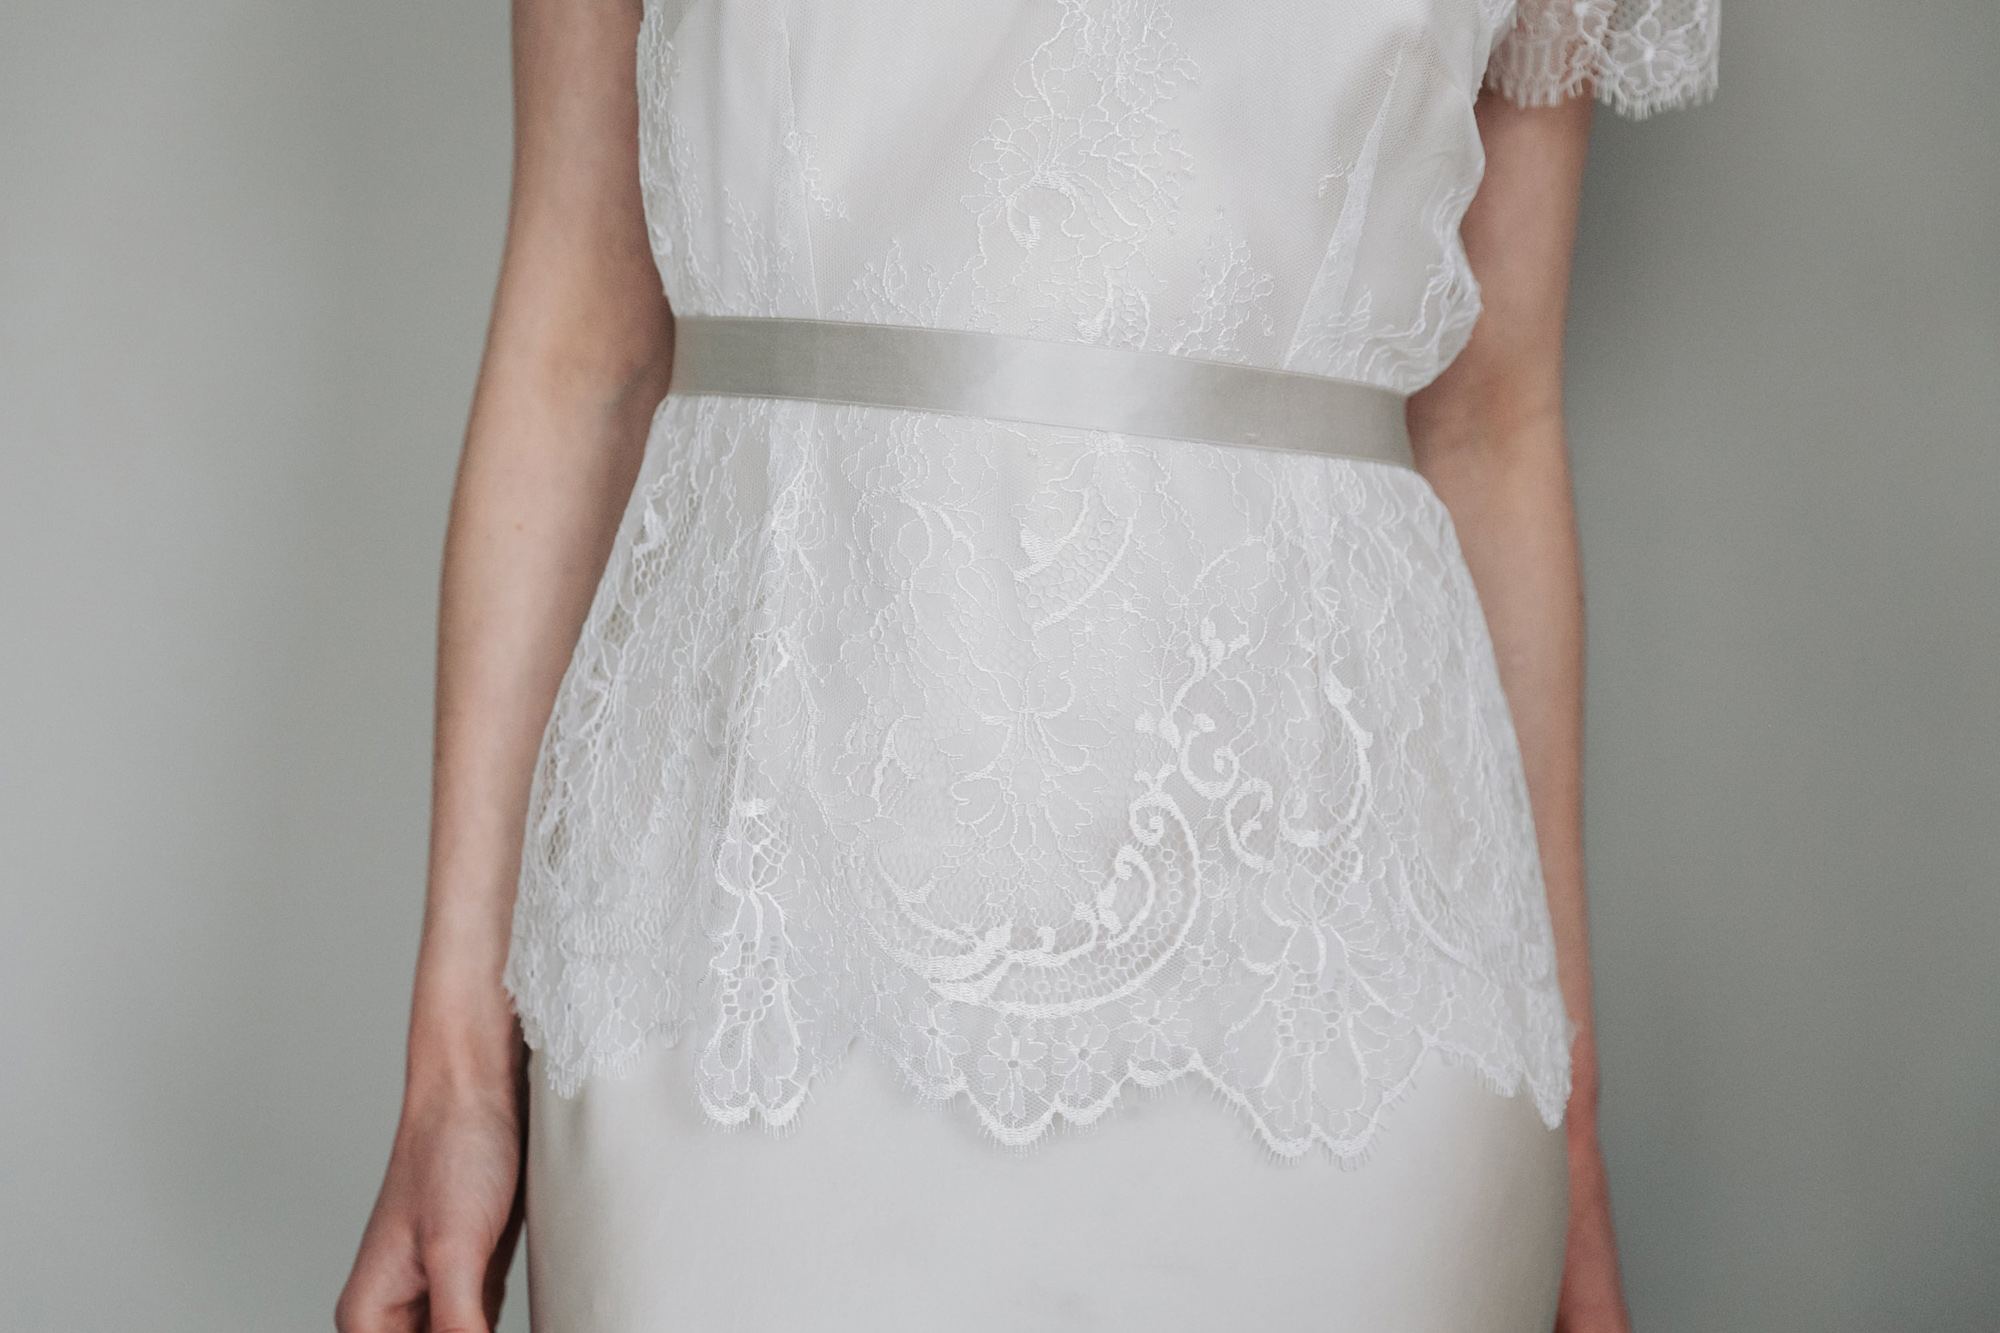 Kate-Beaumont-Sheffield-Lilac-Bridal-Separates-Lace-and-Silk-Wedding-Gown-5.jpg